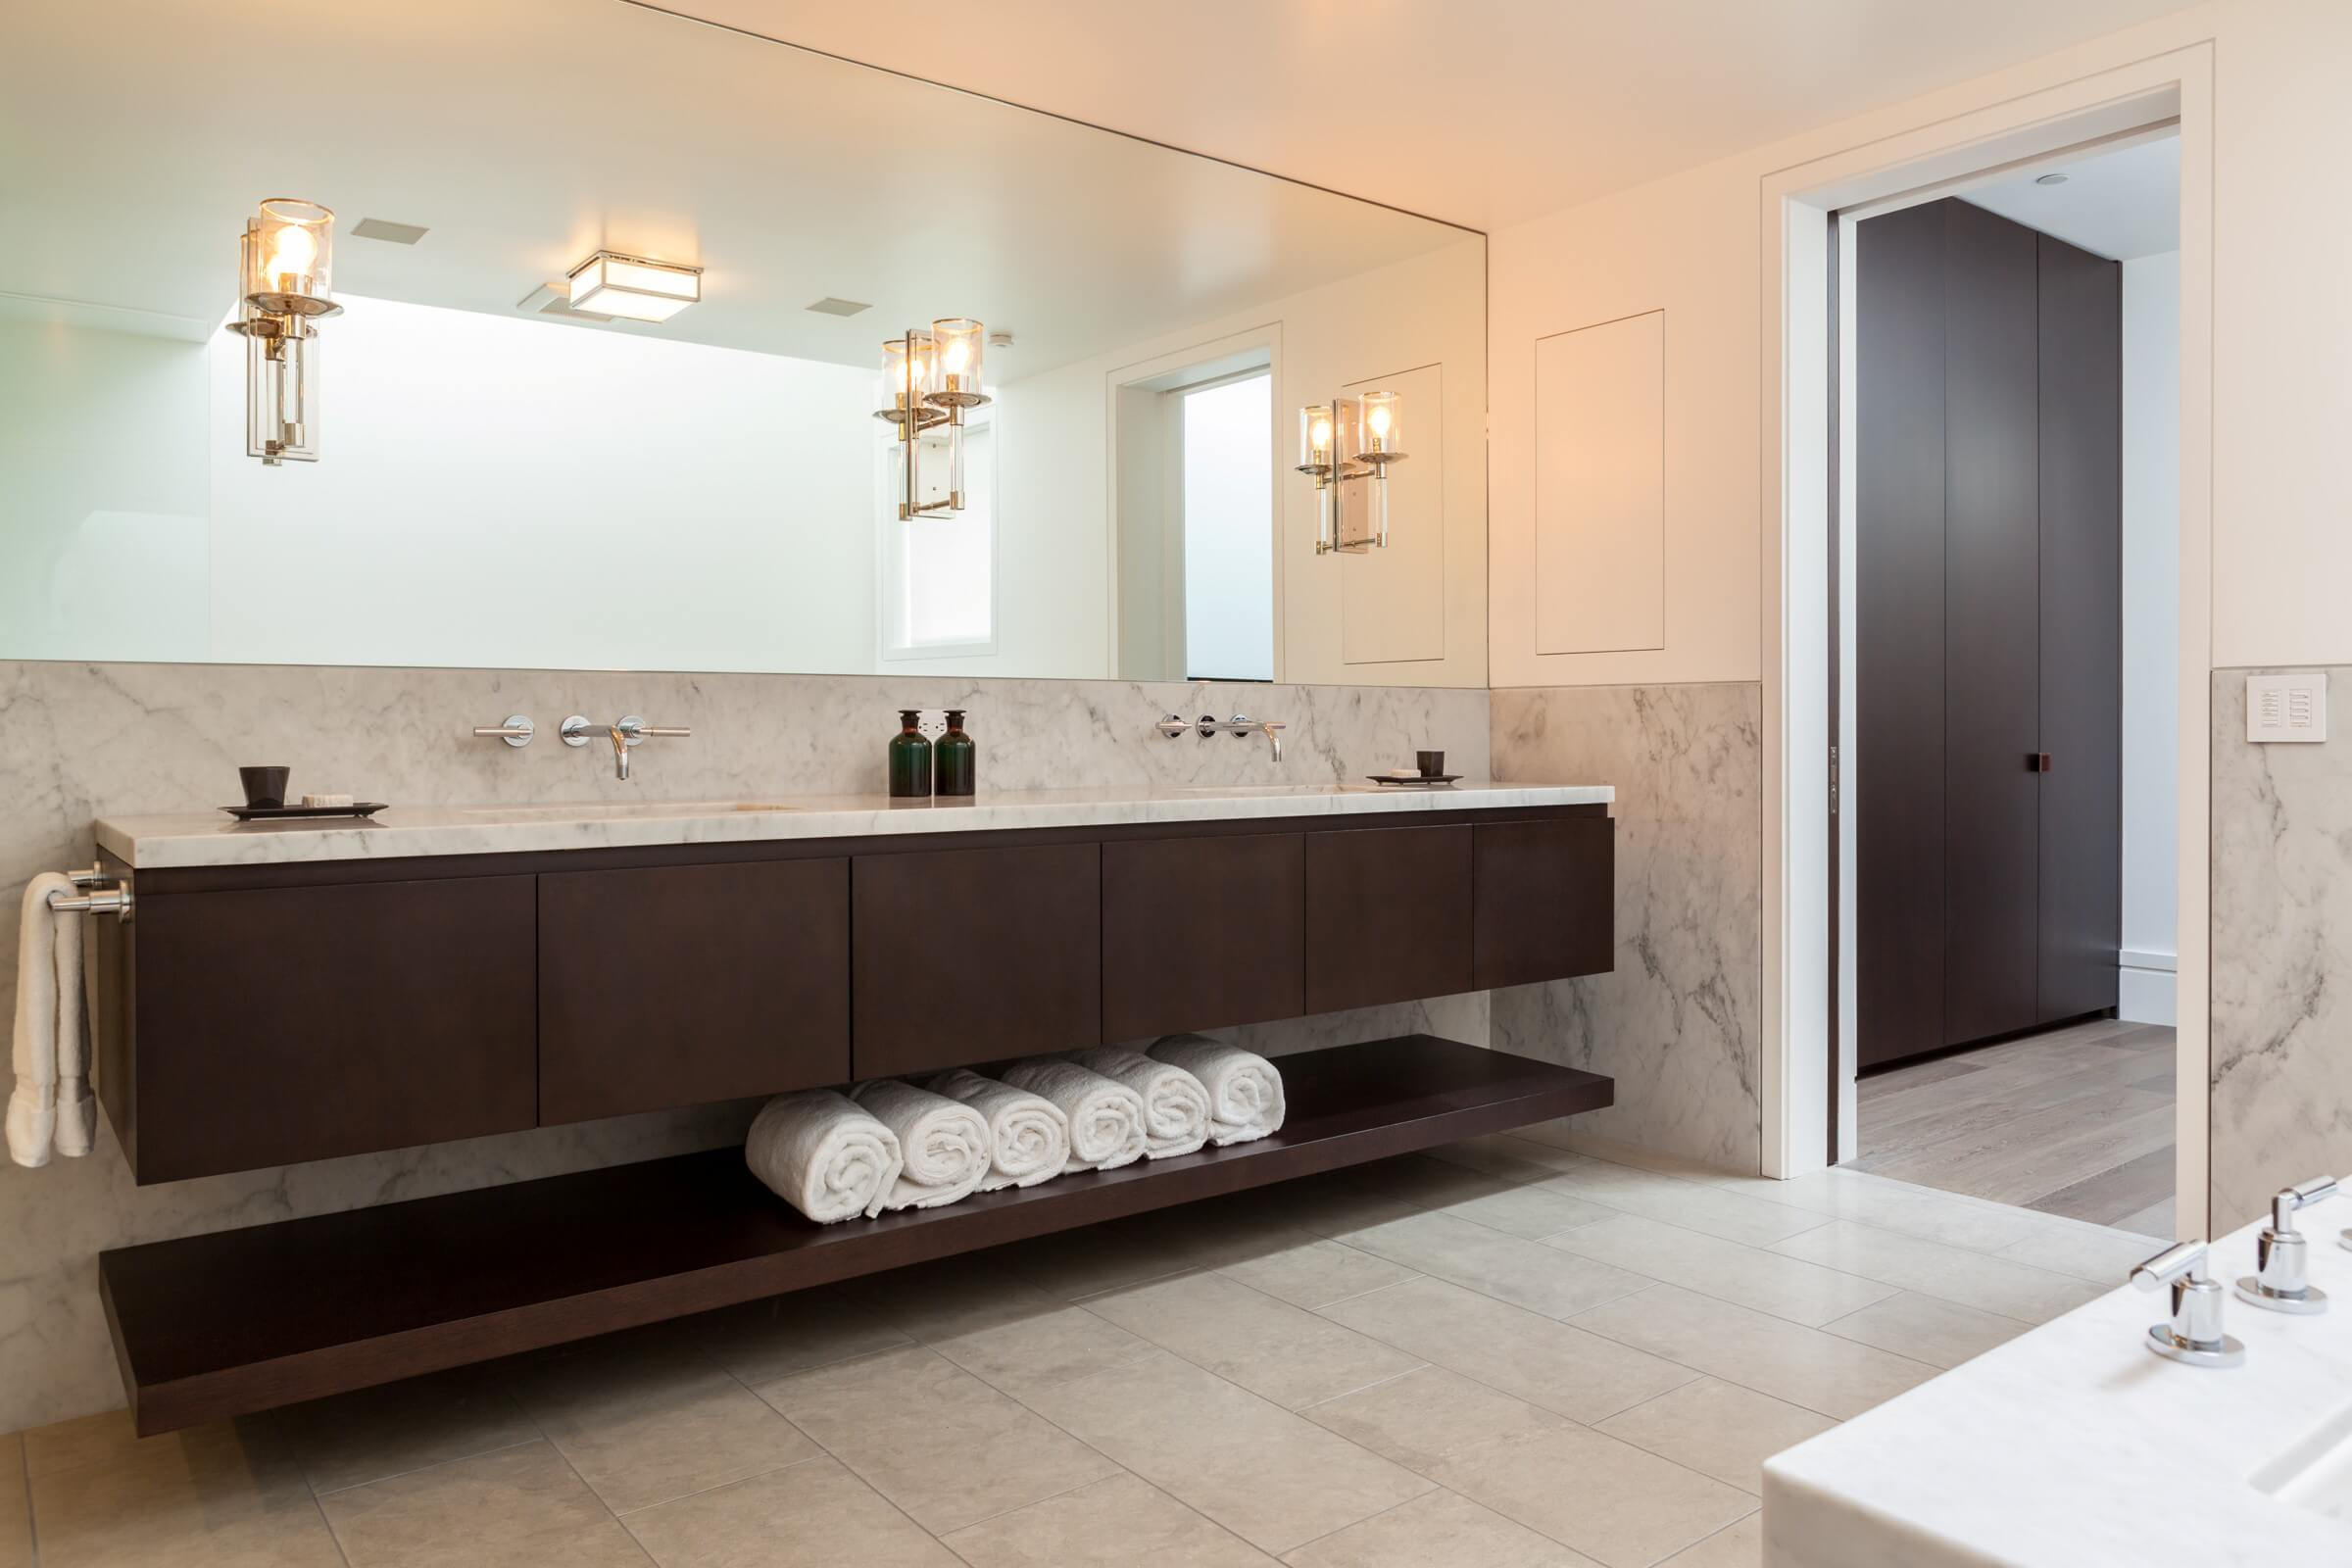 154+ Great Bathroom Ideas and Designs for Every Budget ... on Great Bathroom Ideas  id=86133